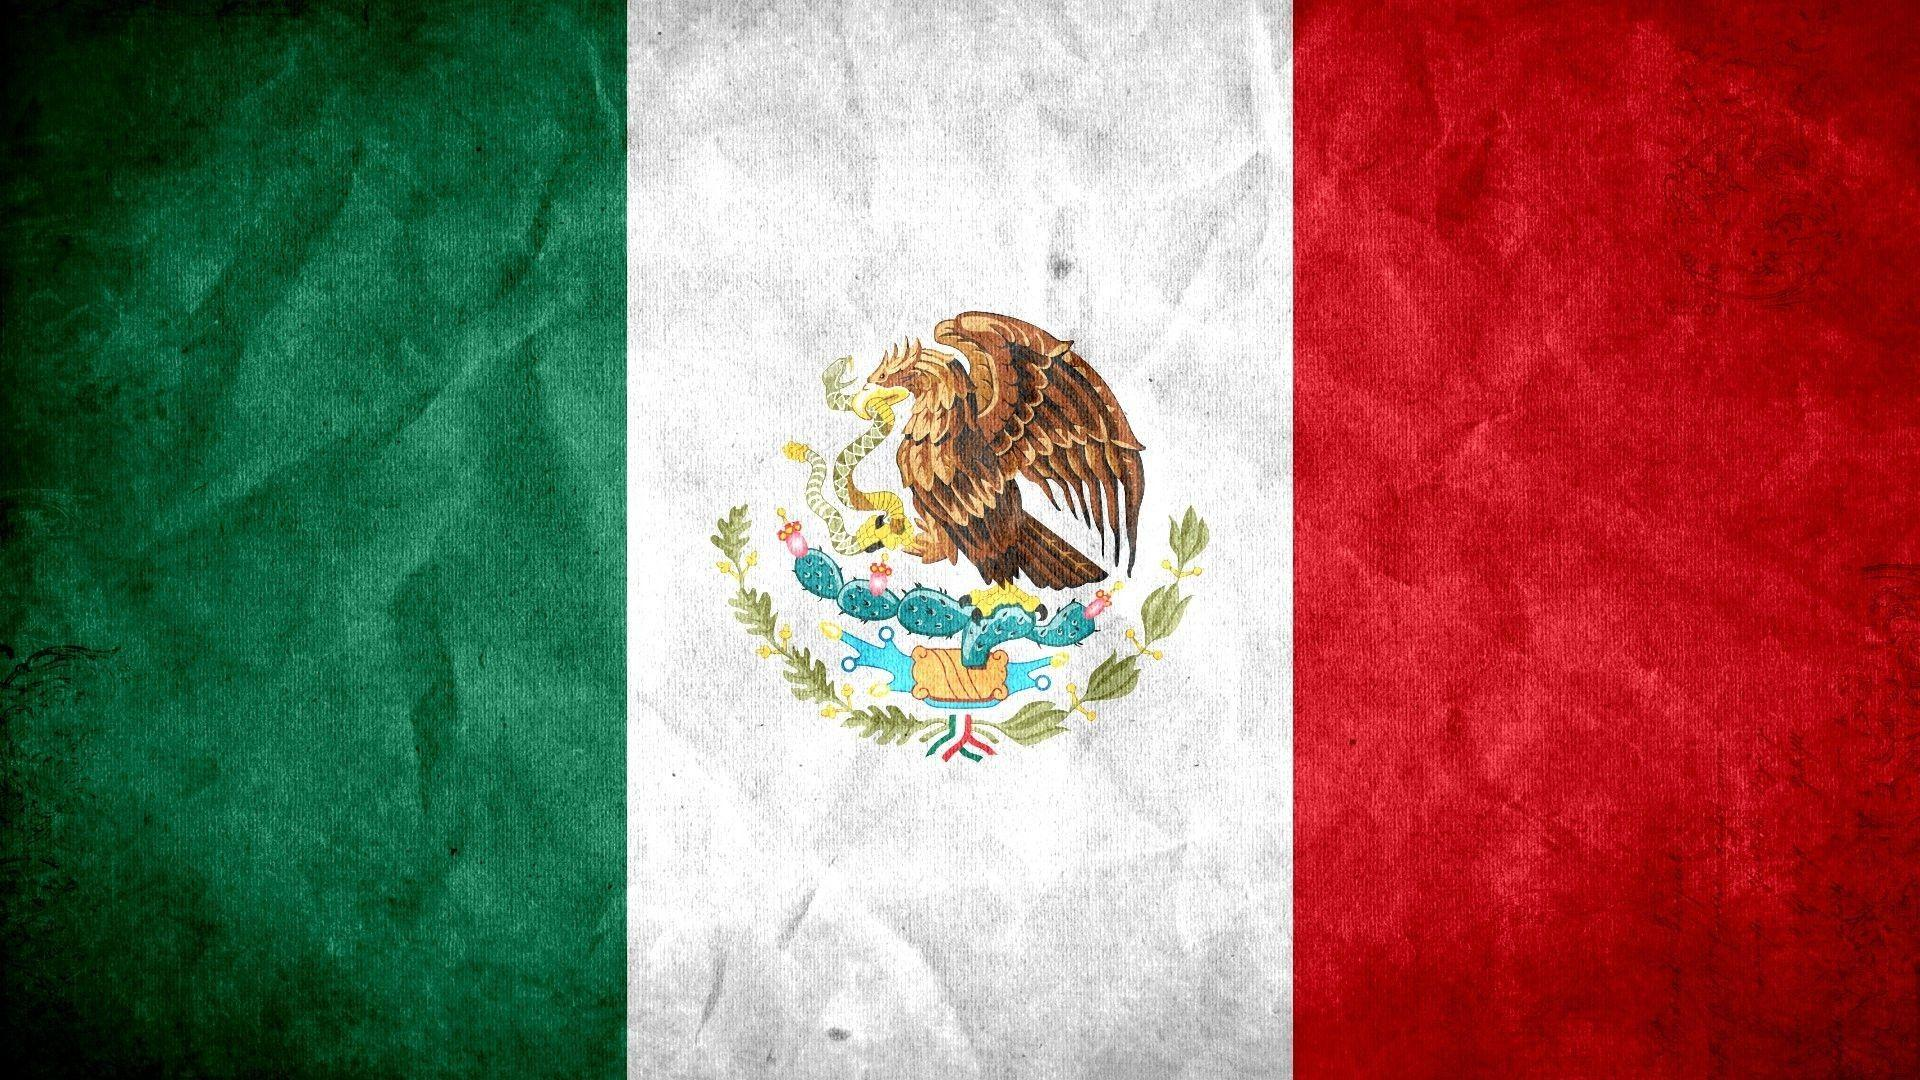 Mexico wallpapers ·① Download free cool HD backgrounds for desktop